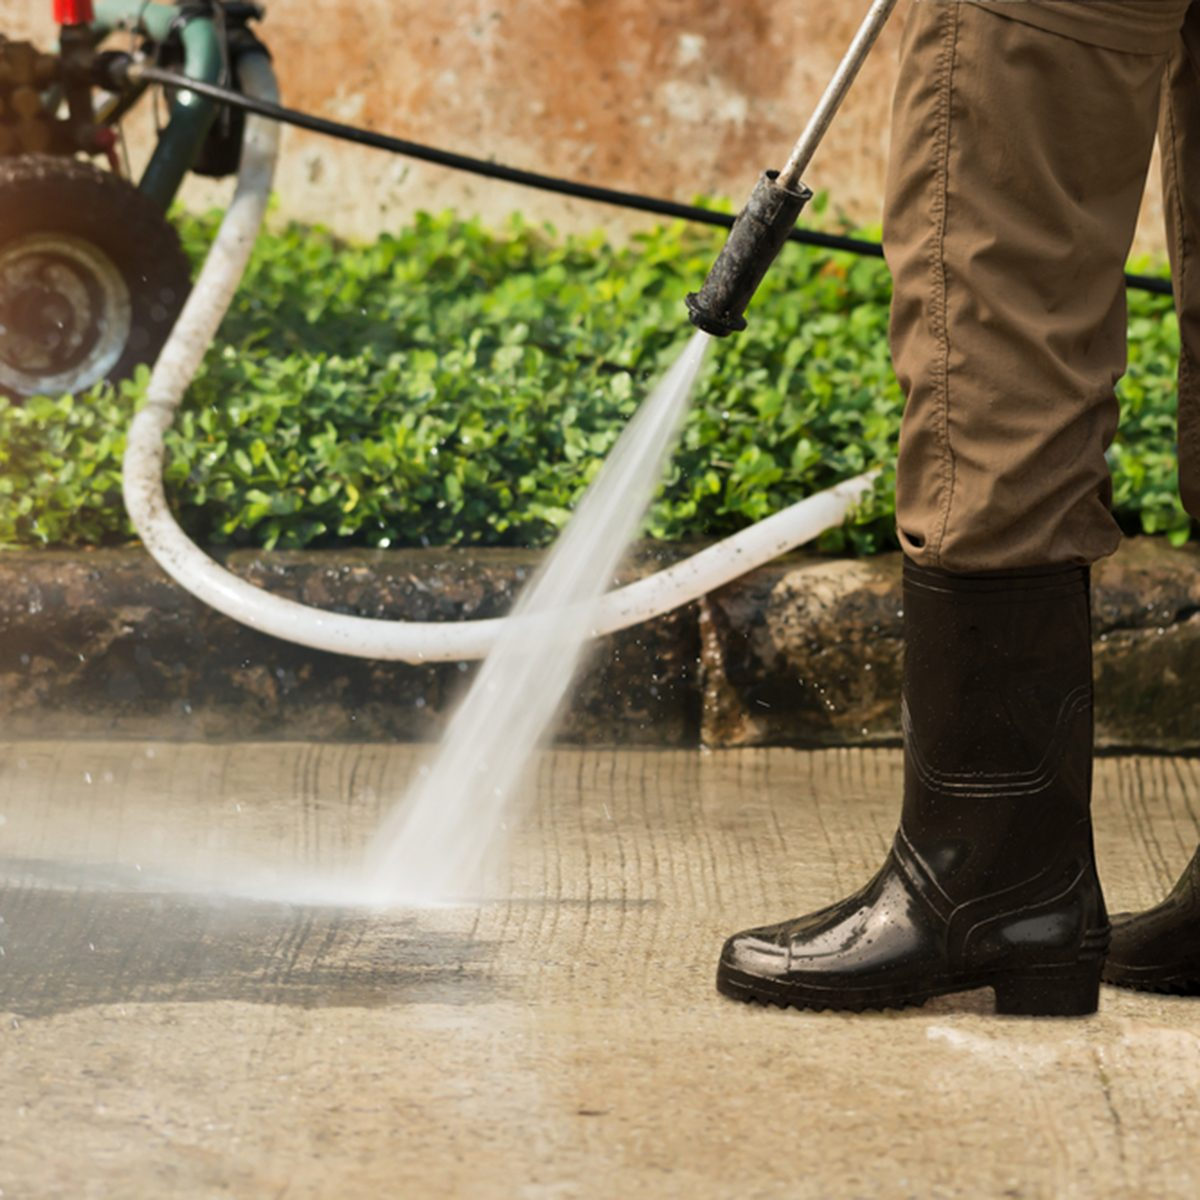 Worker cleaning driveway with gasoline high pressure washer splashing the dirt